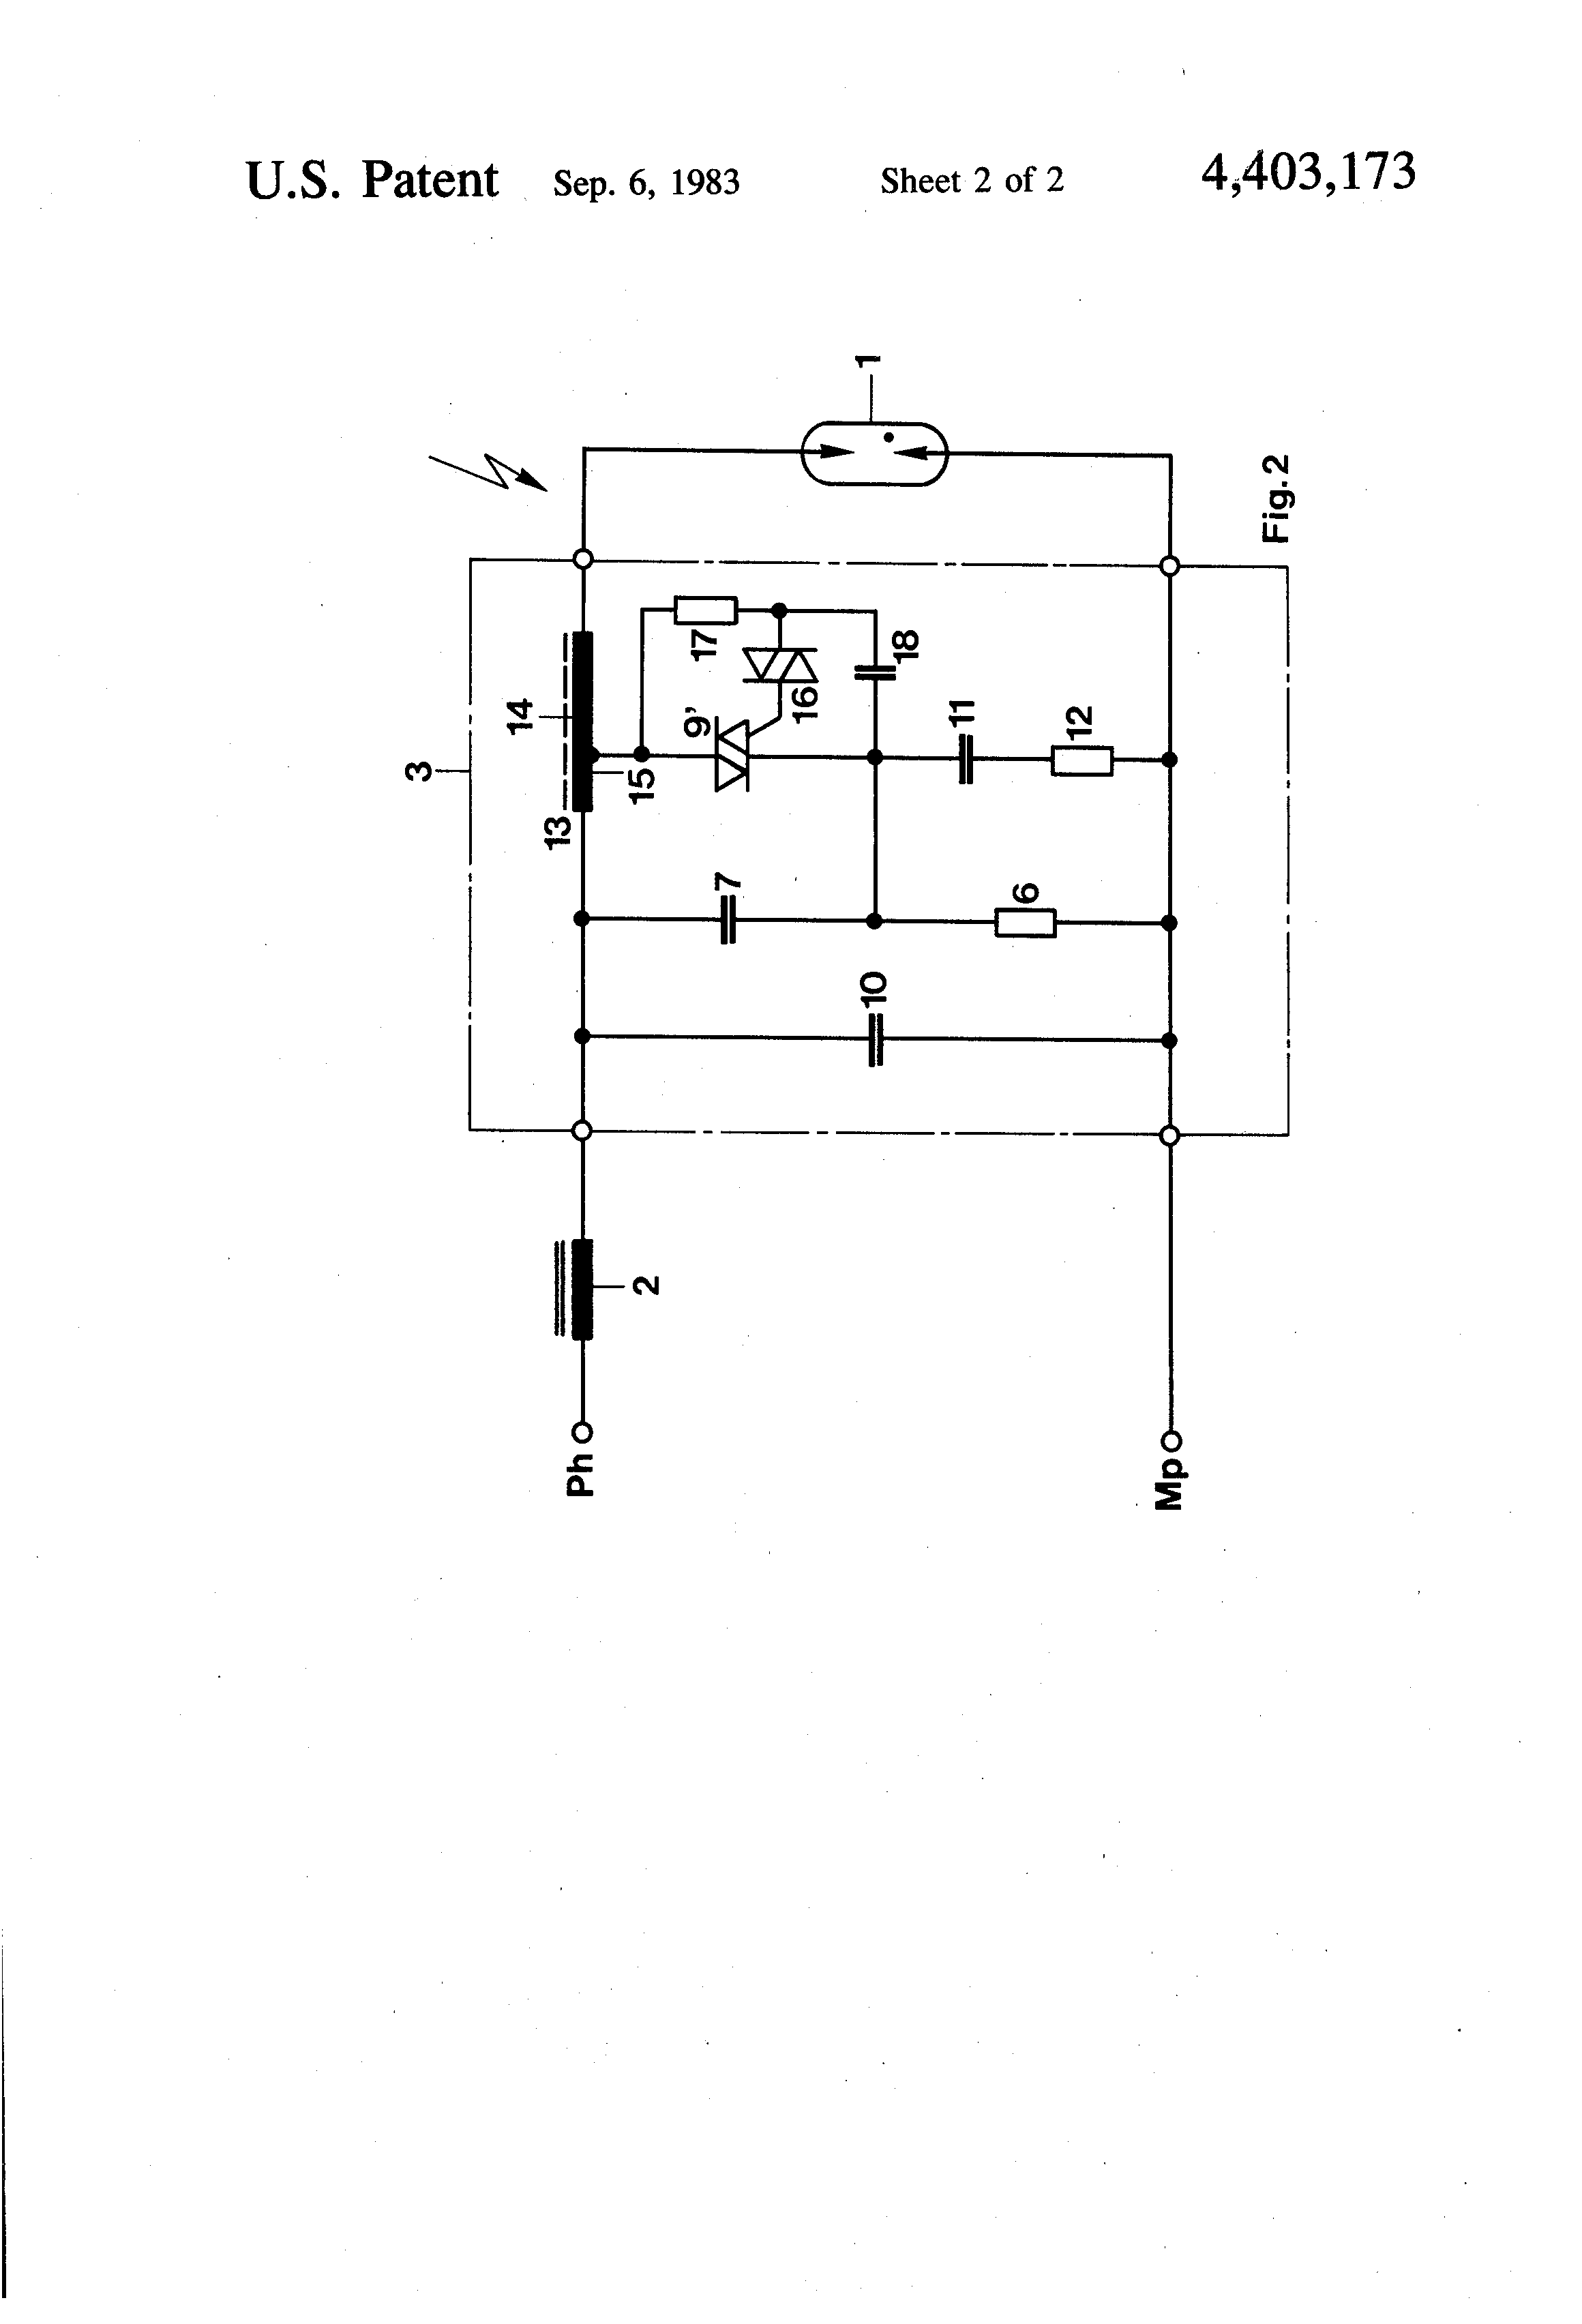 Sodium Wiring Diagram Library Draw Basic Circuit Of Vapour L And Name The Ponents For